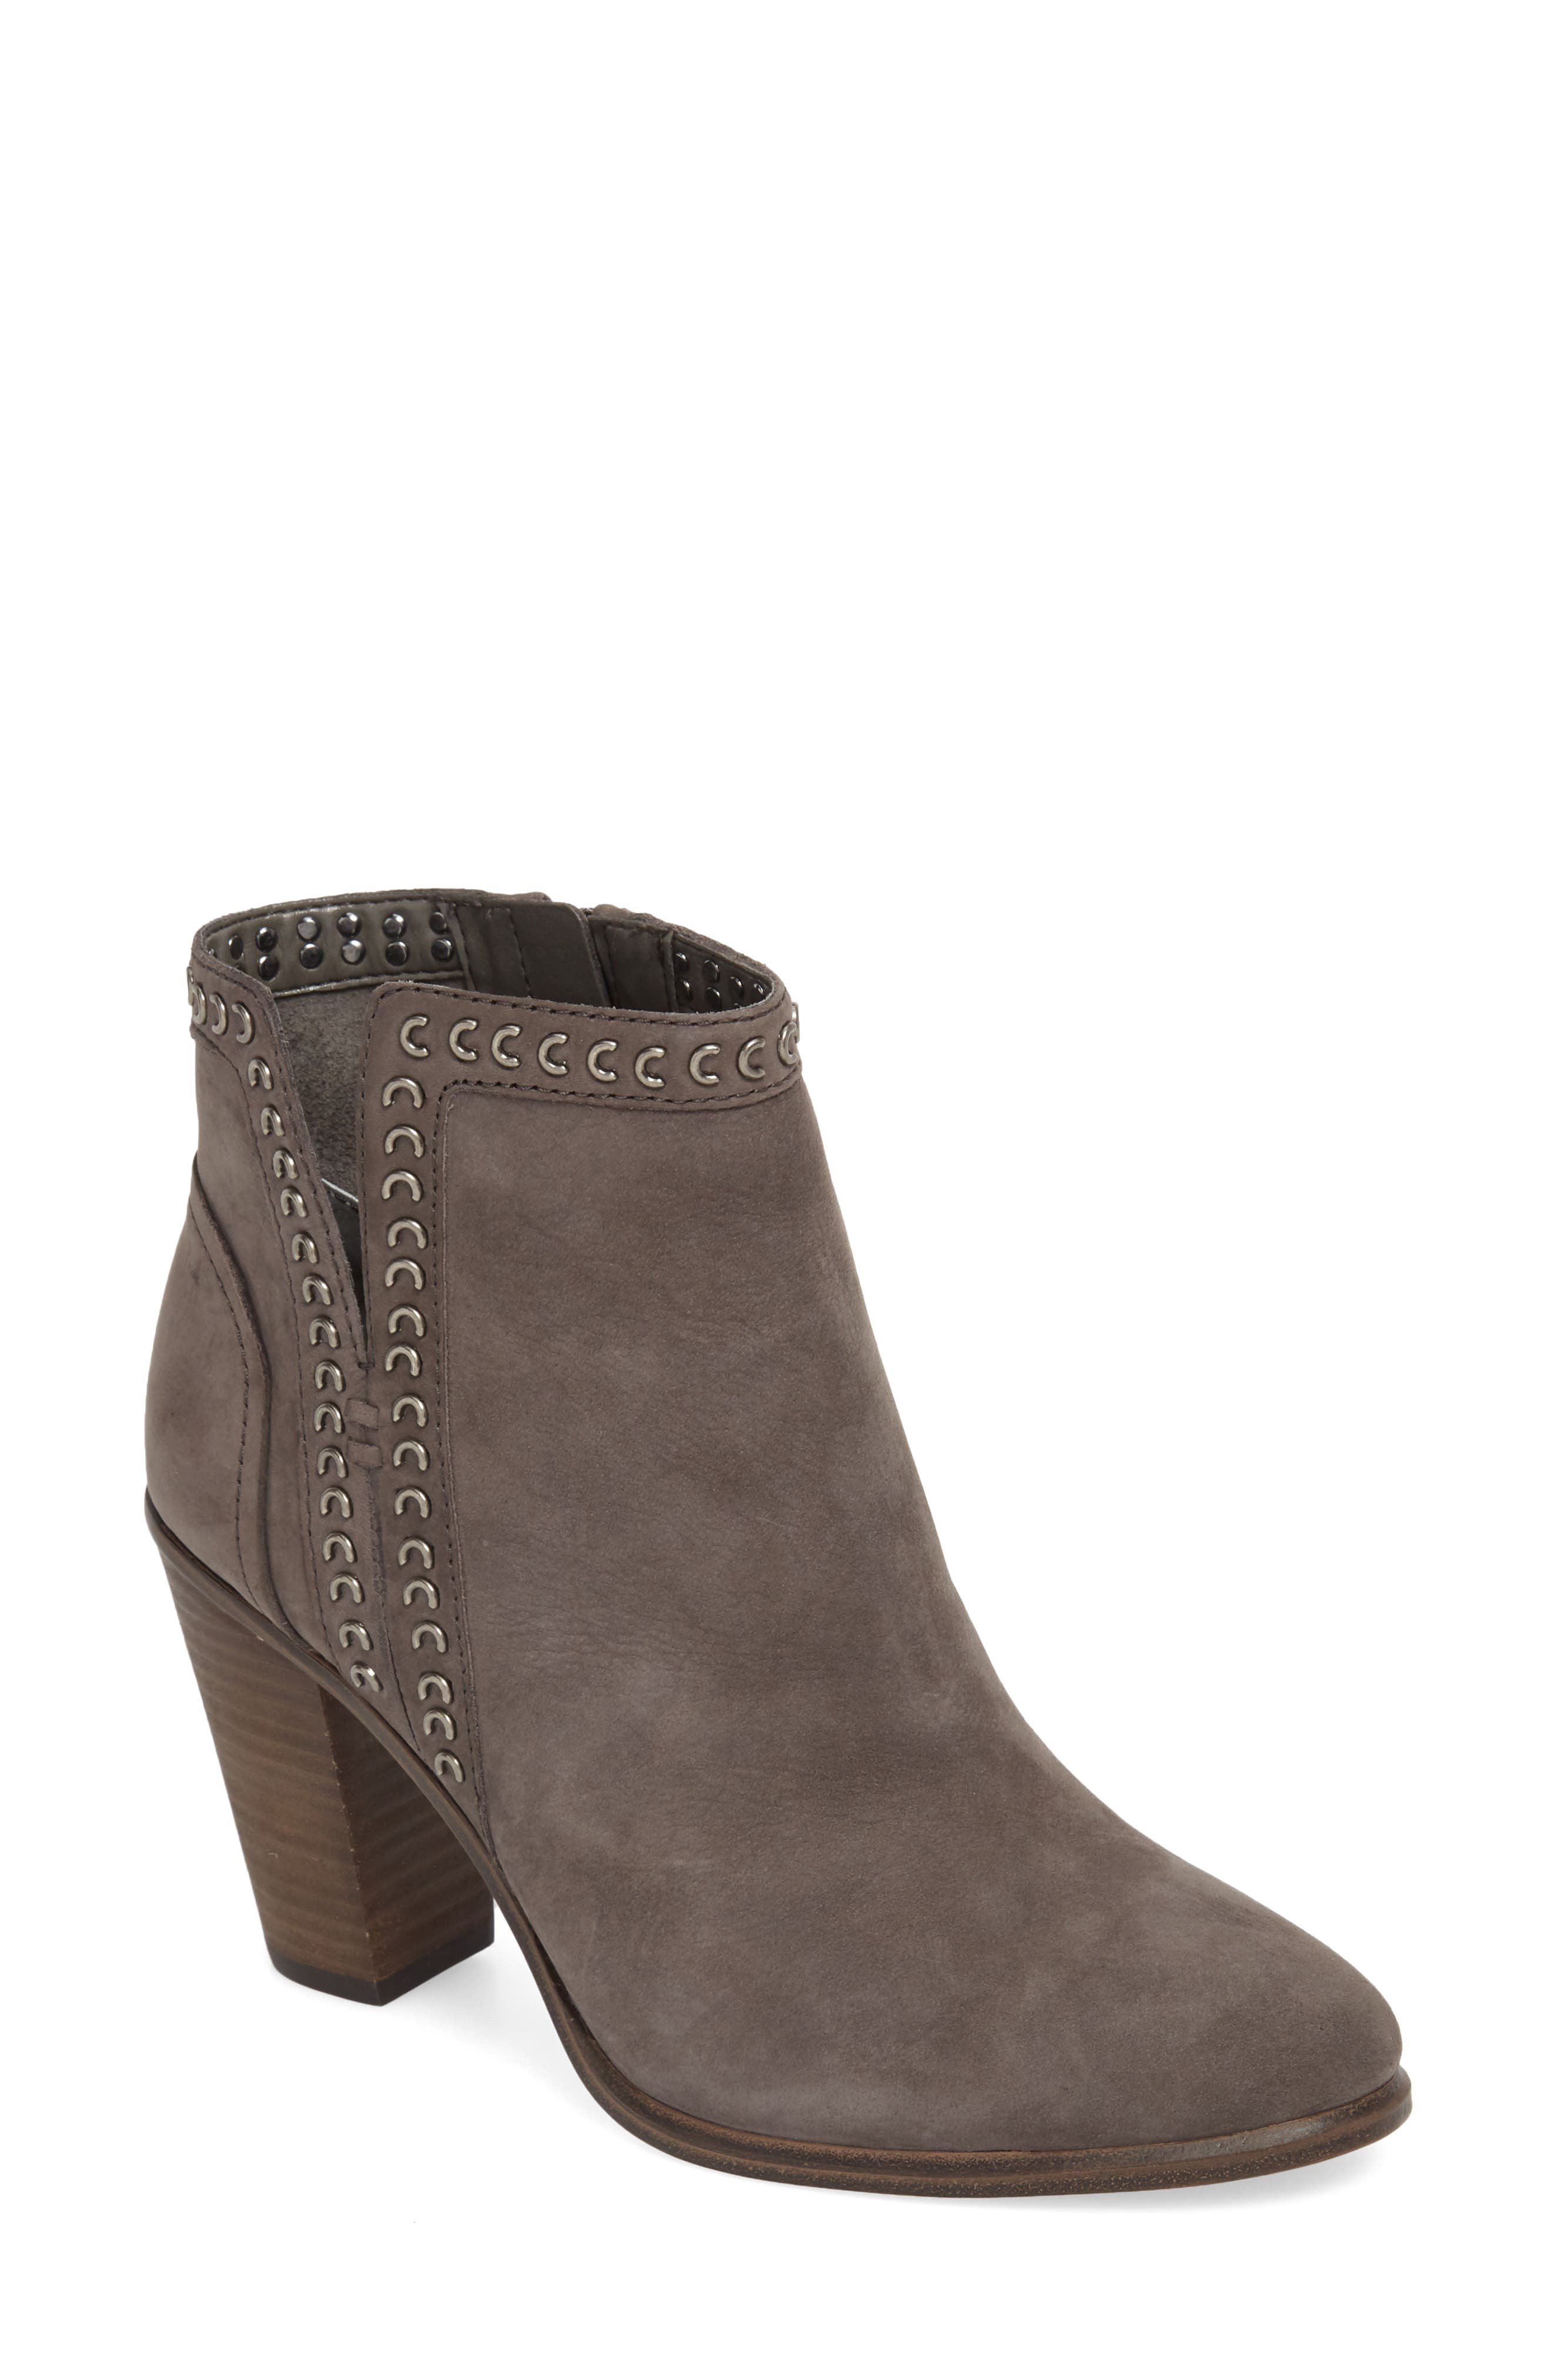 Finchie Bootie,                             Main thumbnail 1, color,                             Greystone Leather